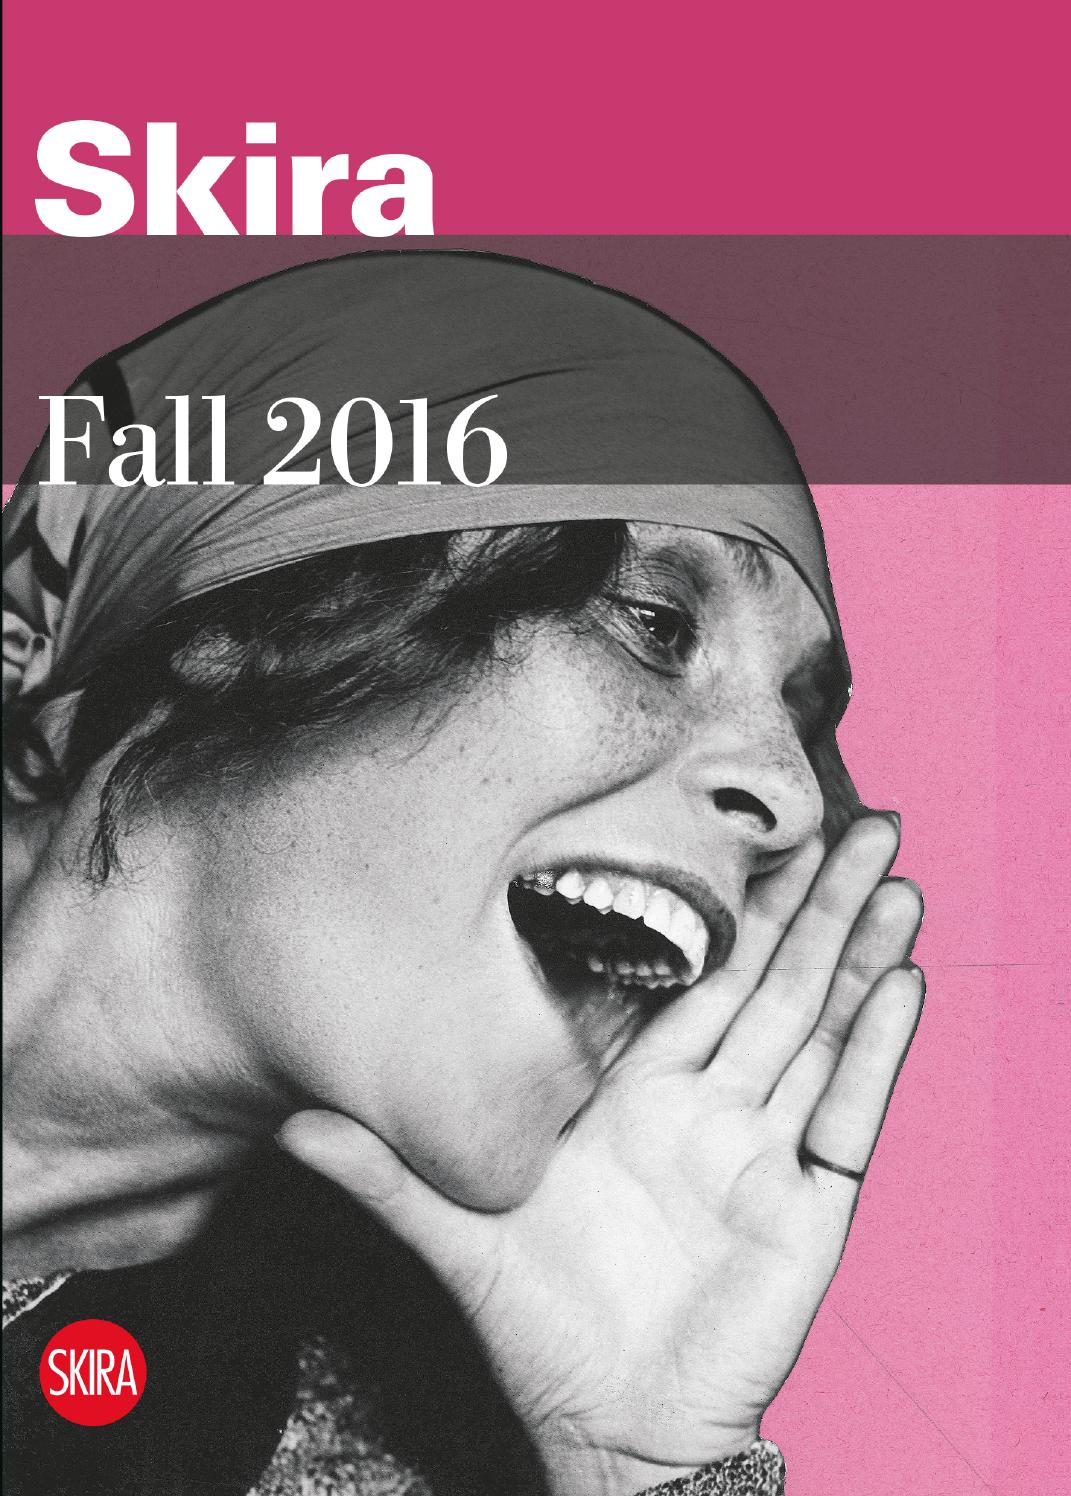 Catalogo Skira Fall 2016 by Skira editore - issuu